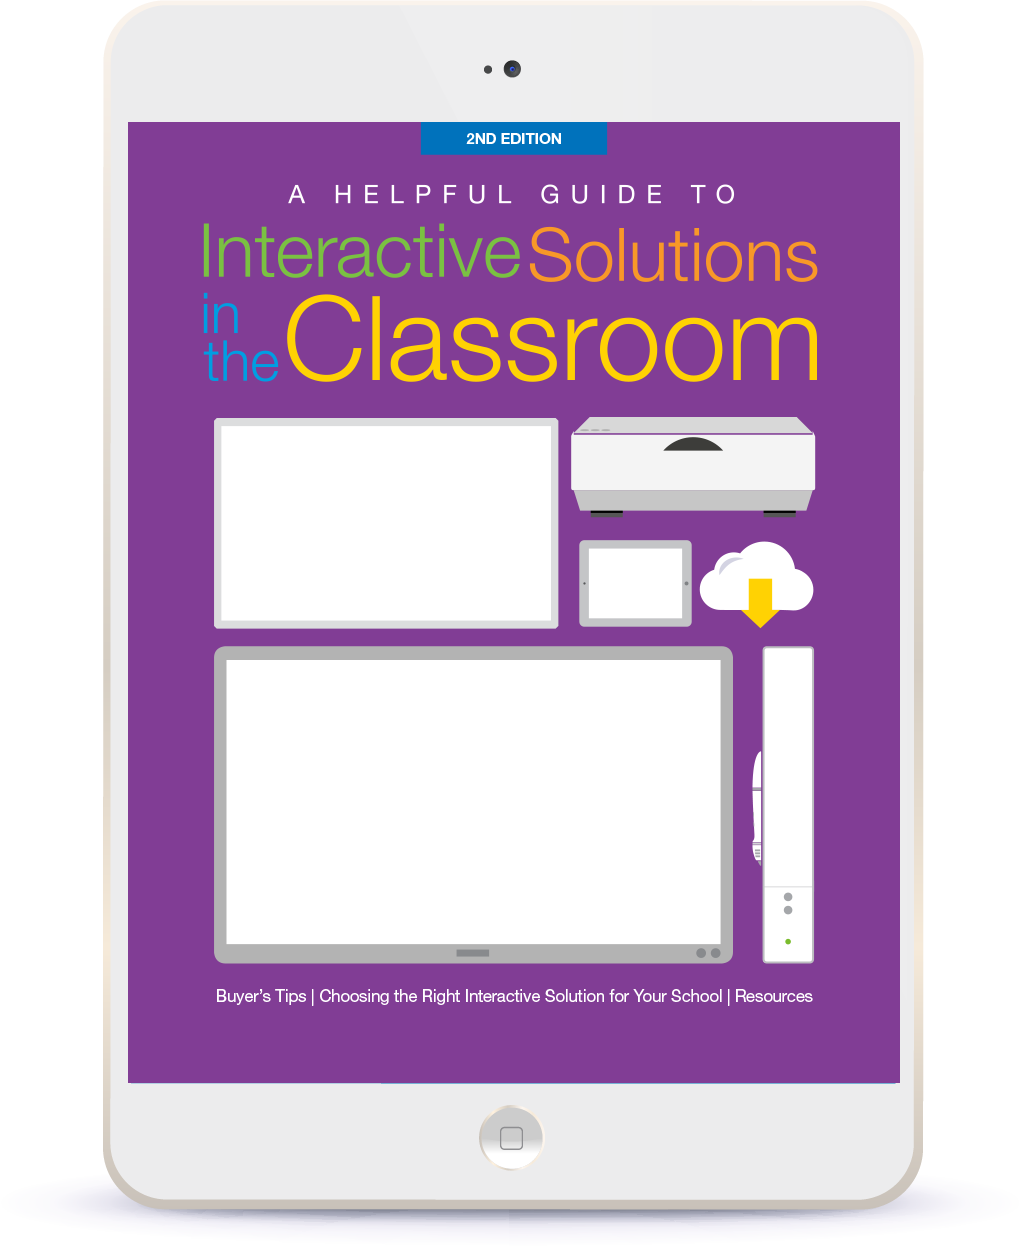 A Helpful Guide - Interactive Solution in the Classroom